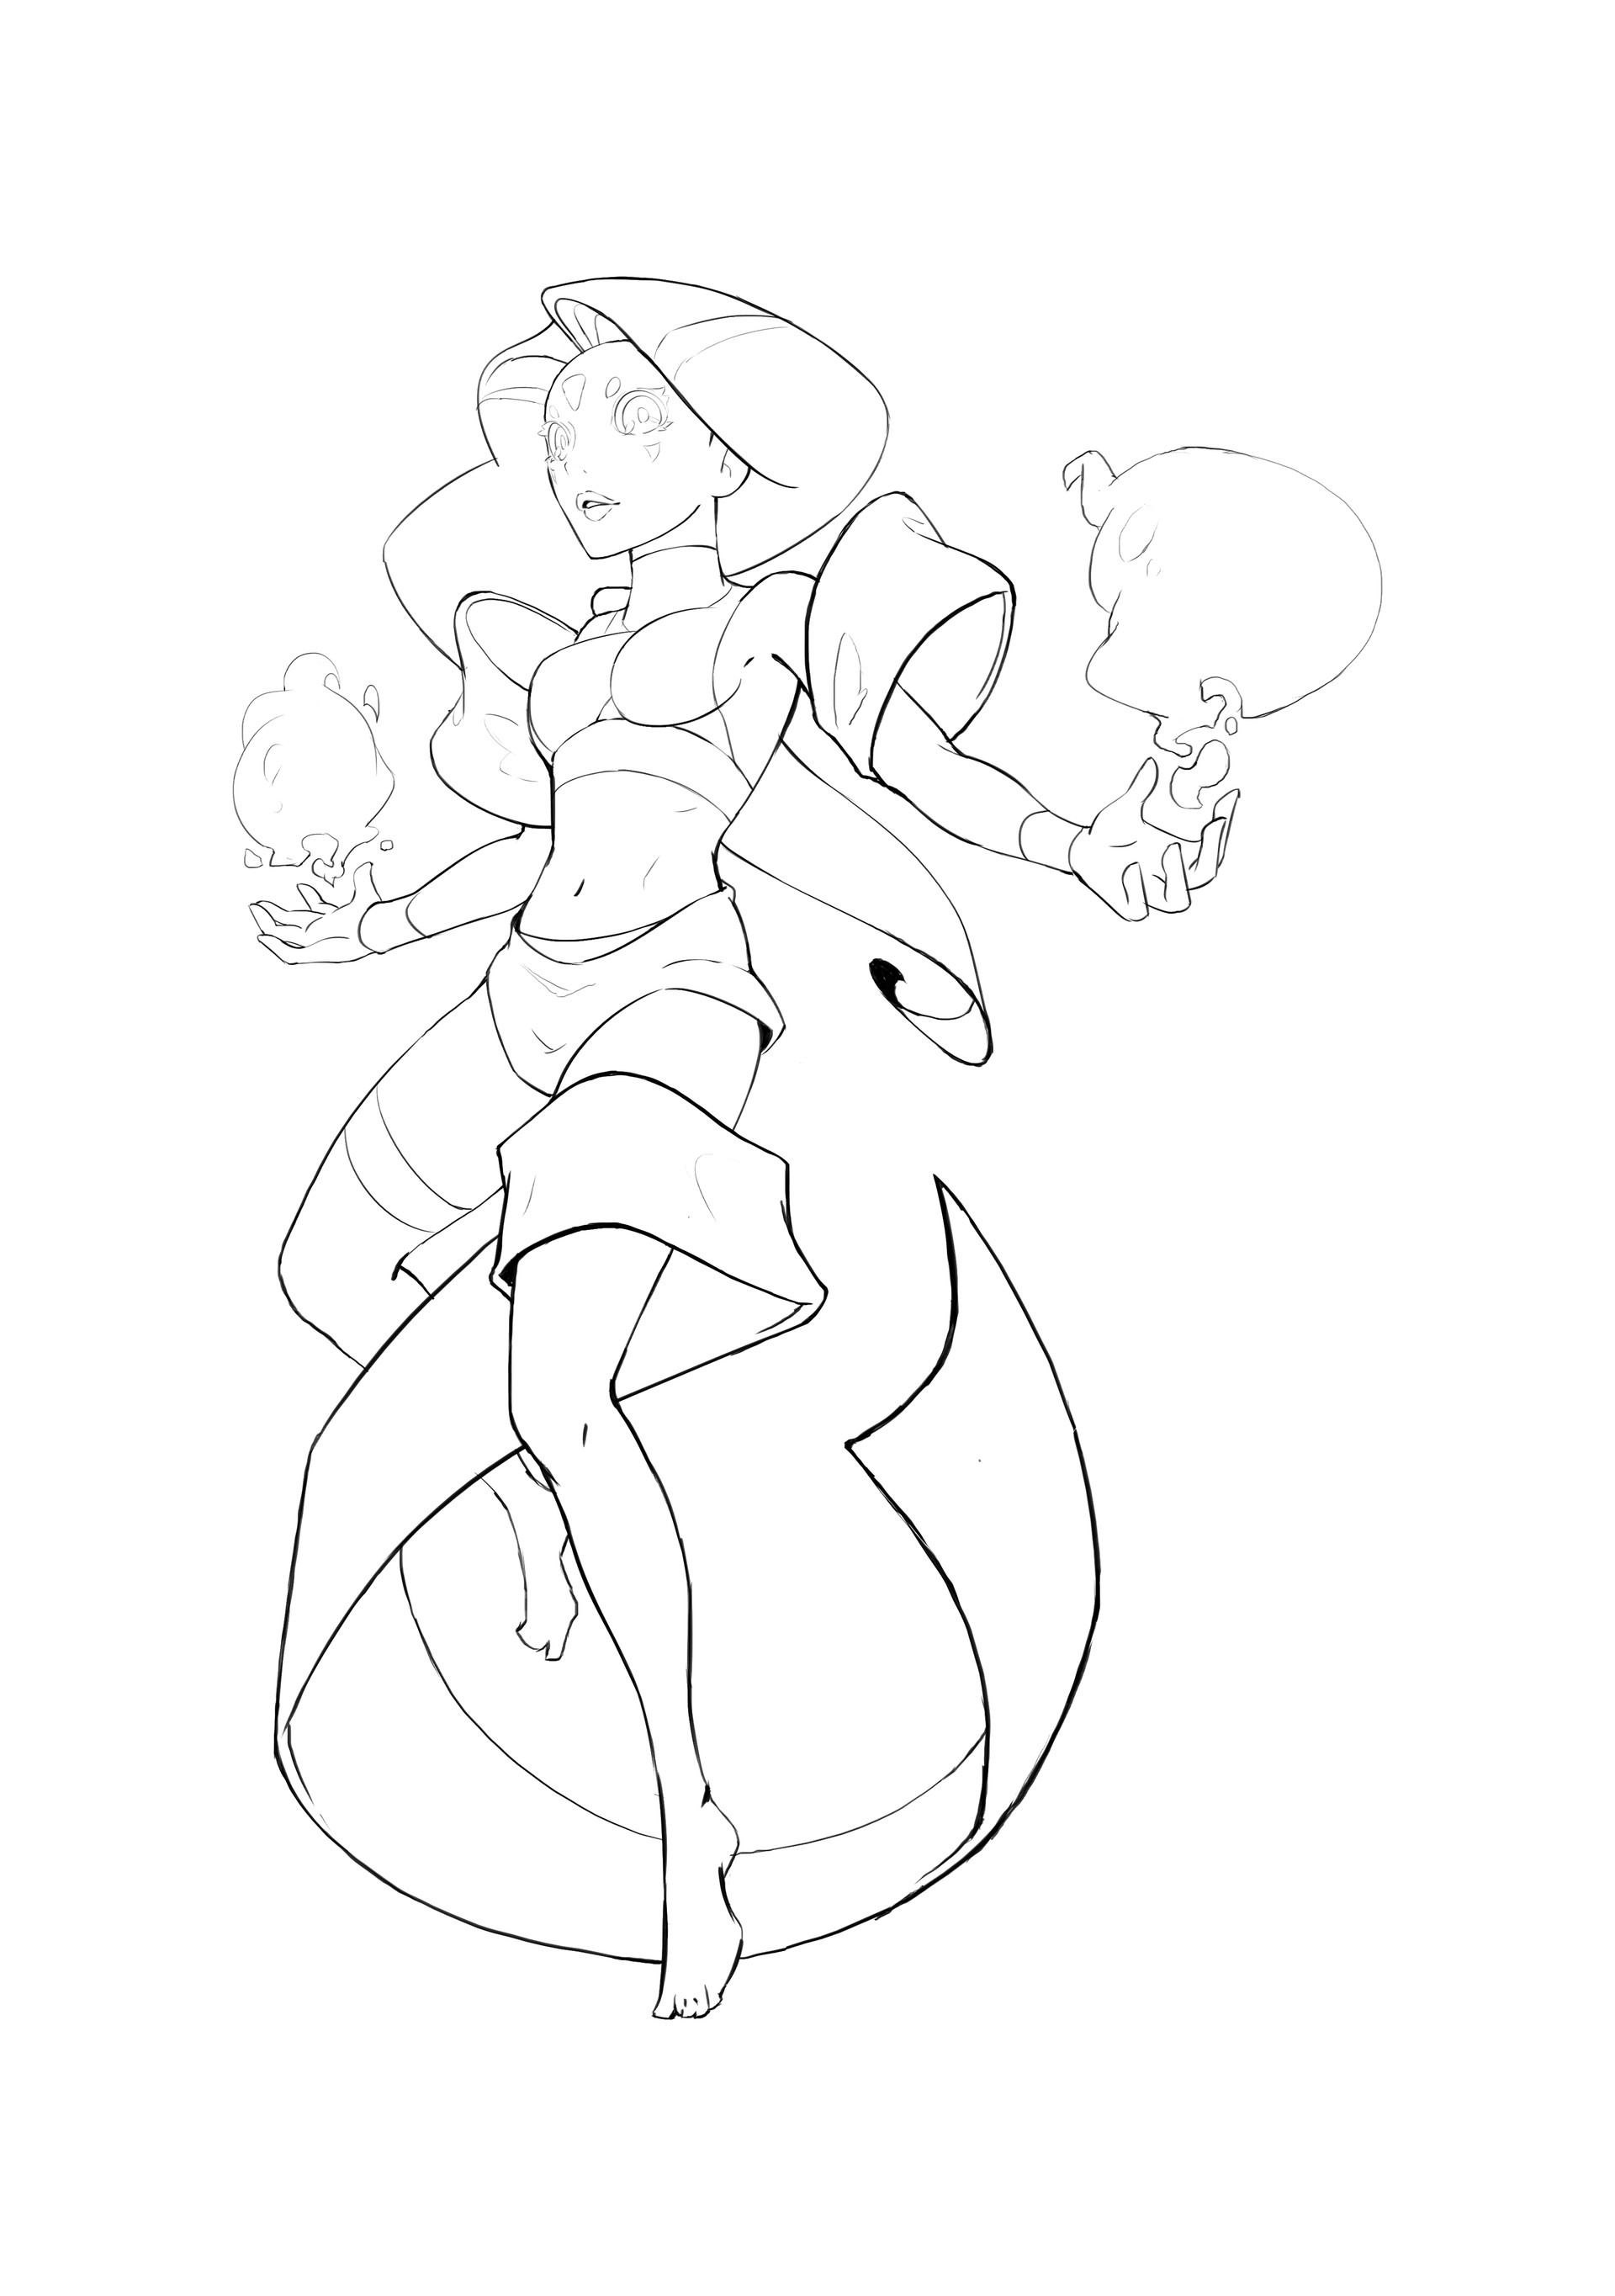 Michelle lo digamstest 02 lineart